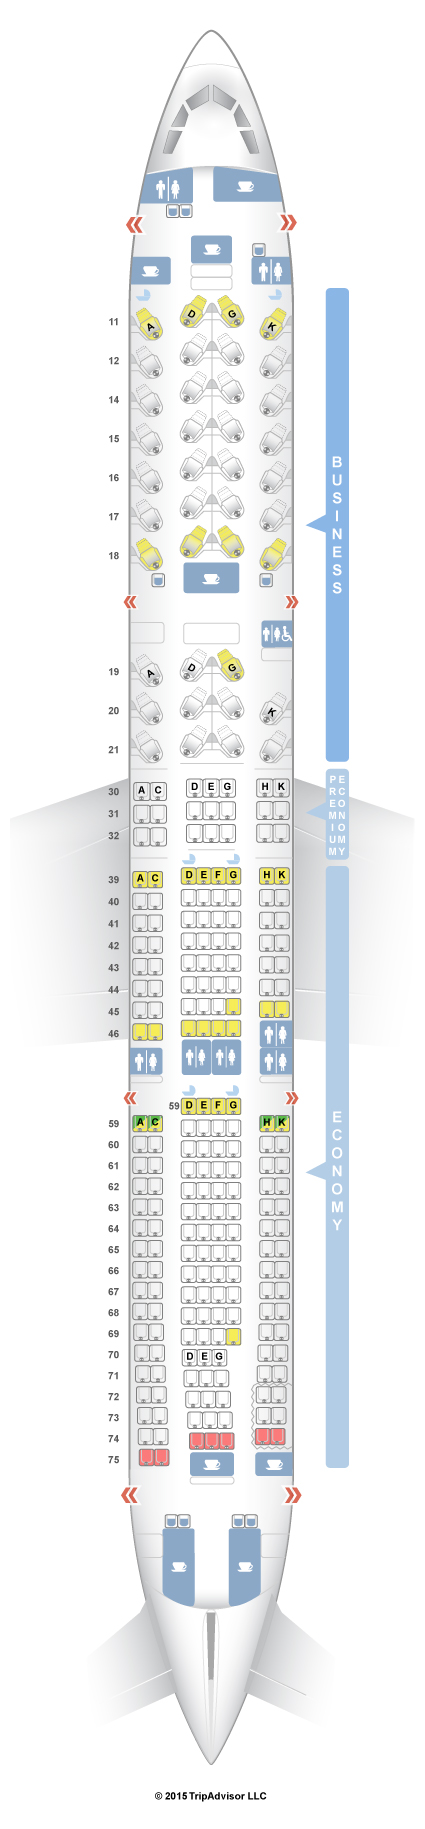 Cathay Pacific Premium Economy Seat Map SeatGuru Seat Map Cathay Pacific